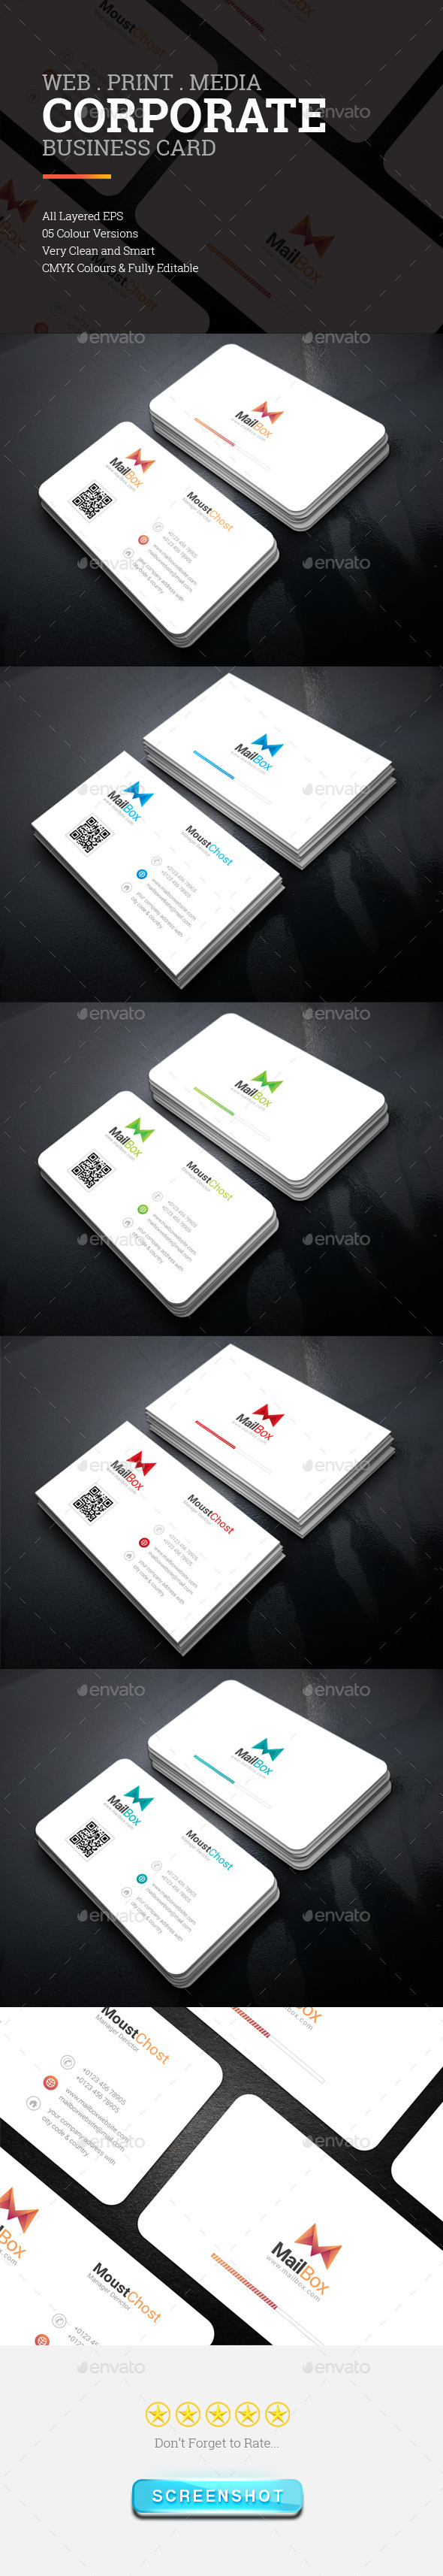 MailBox Corporate Business Card